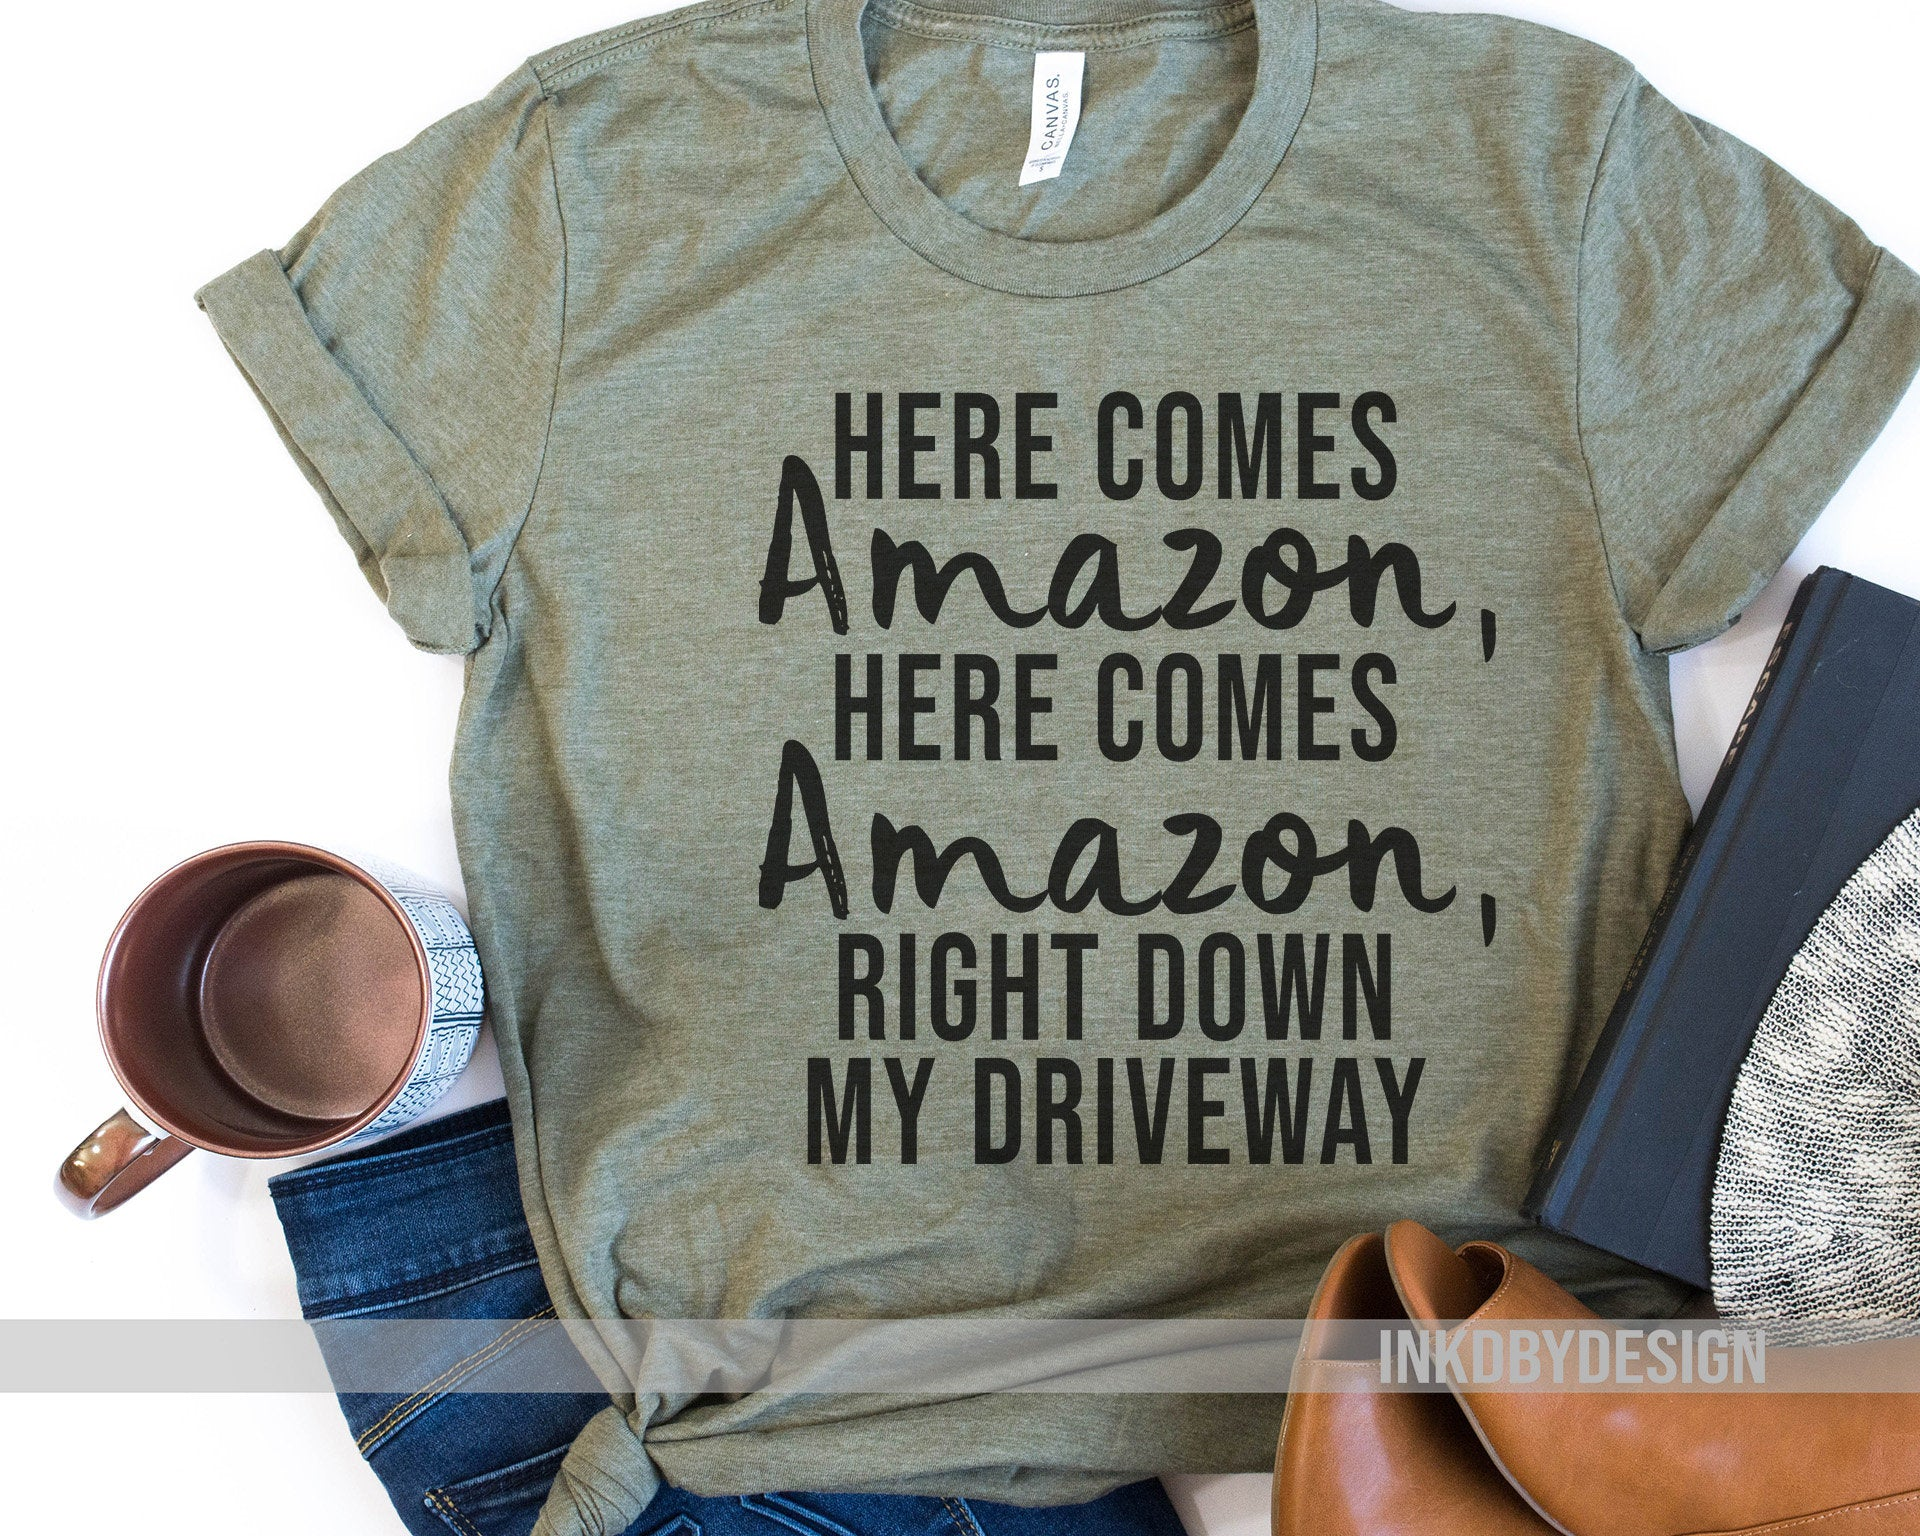 outlet online brand quality 2019 best sell Womens Shirts With Sayings On Them - Nils Stucki Kieferorthopäde